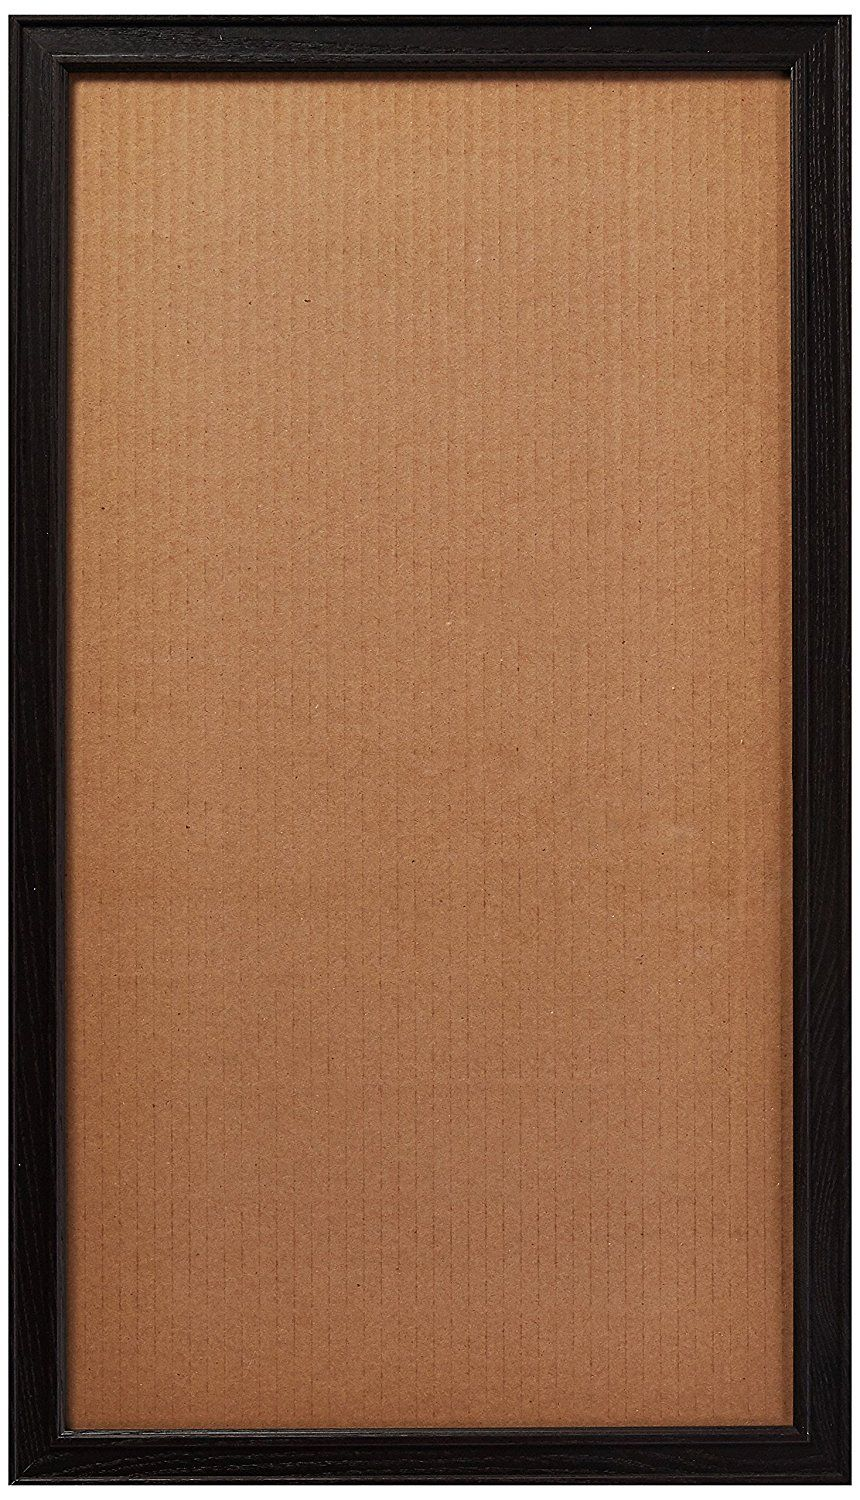 ArtToFrames 10x16 inch Black Stain on Maple Wood Picture Frame ...